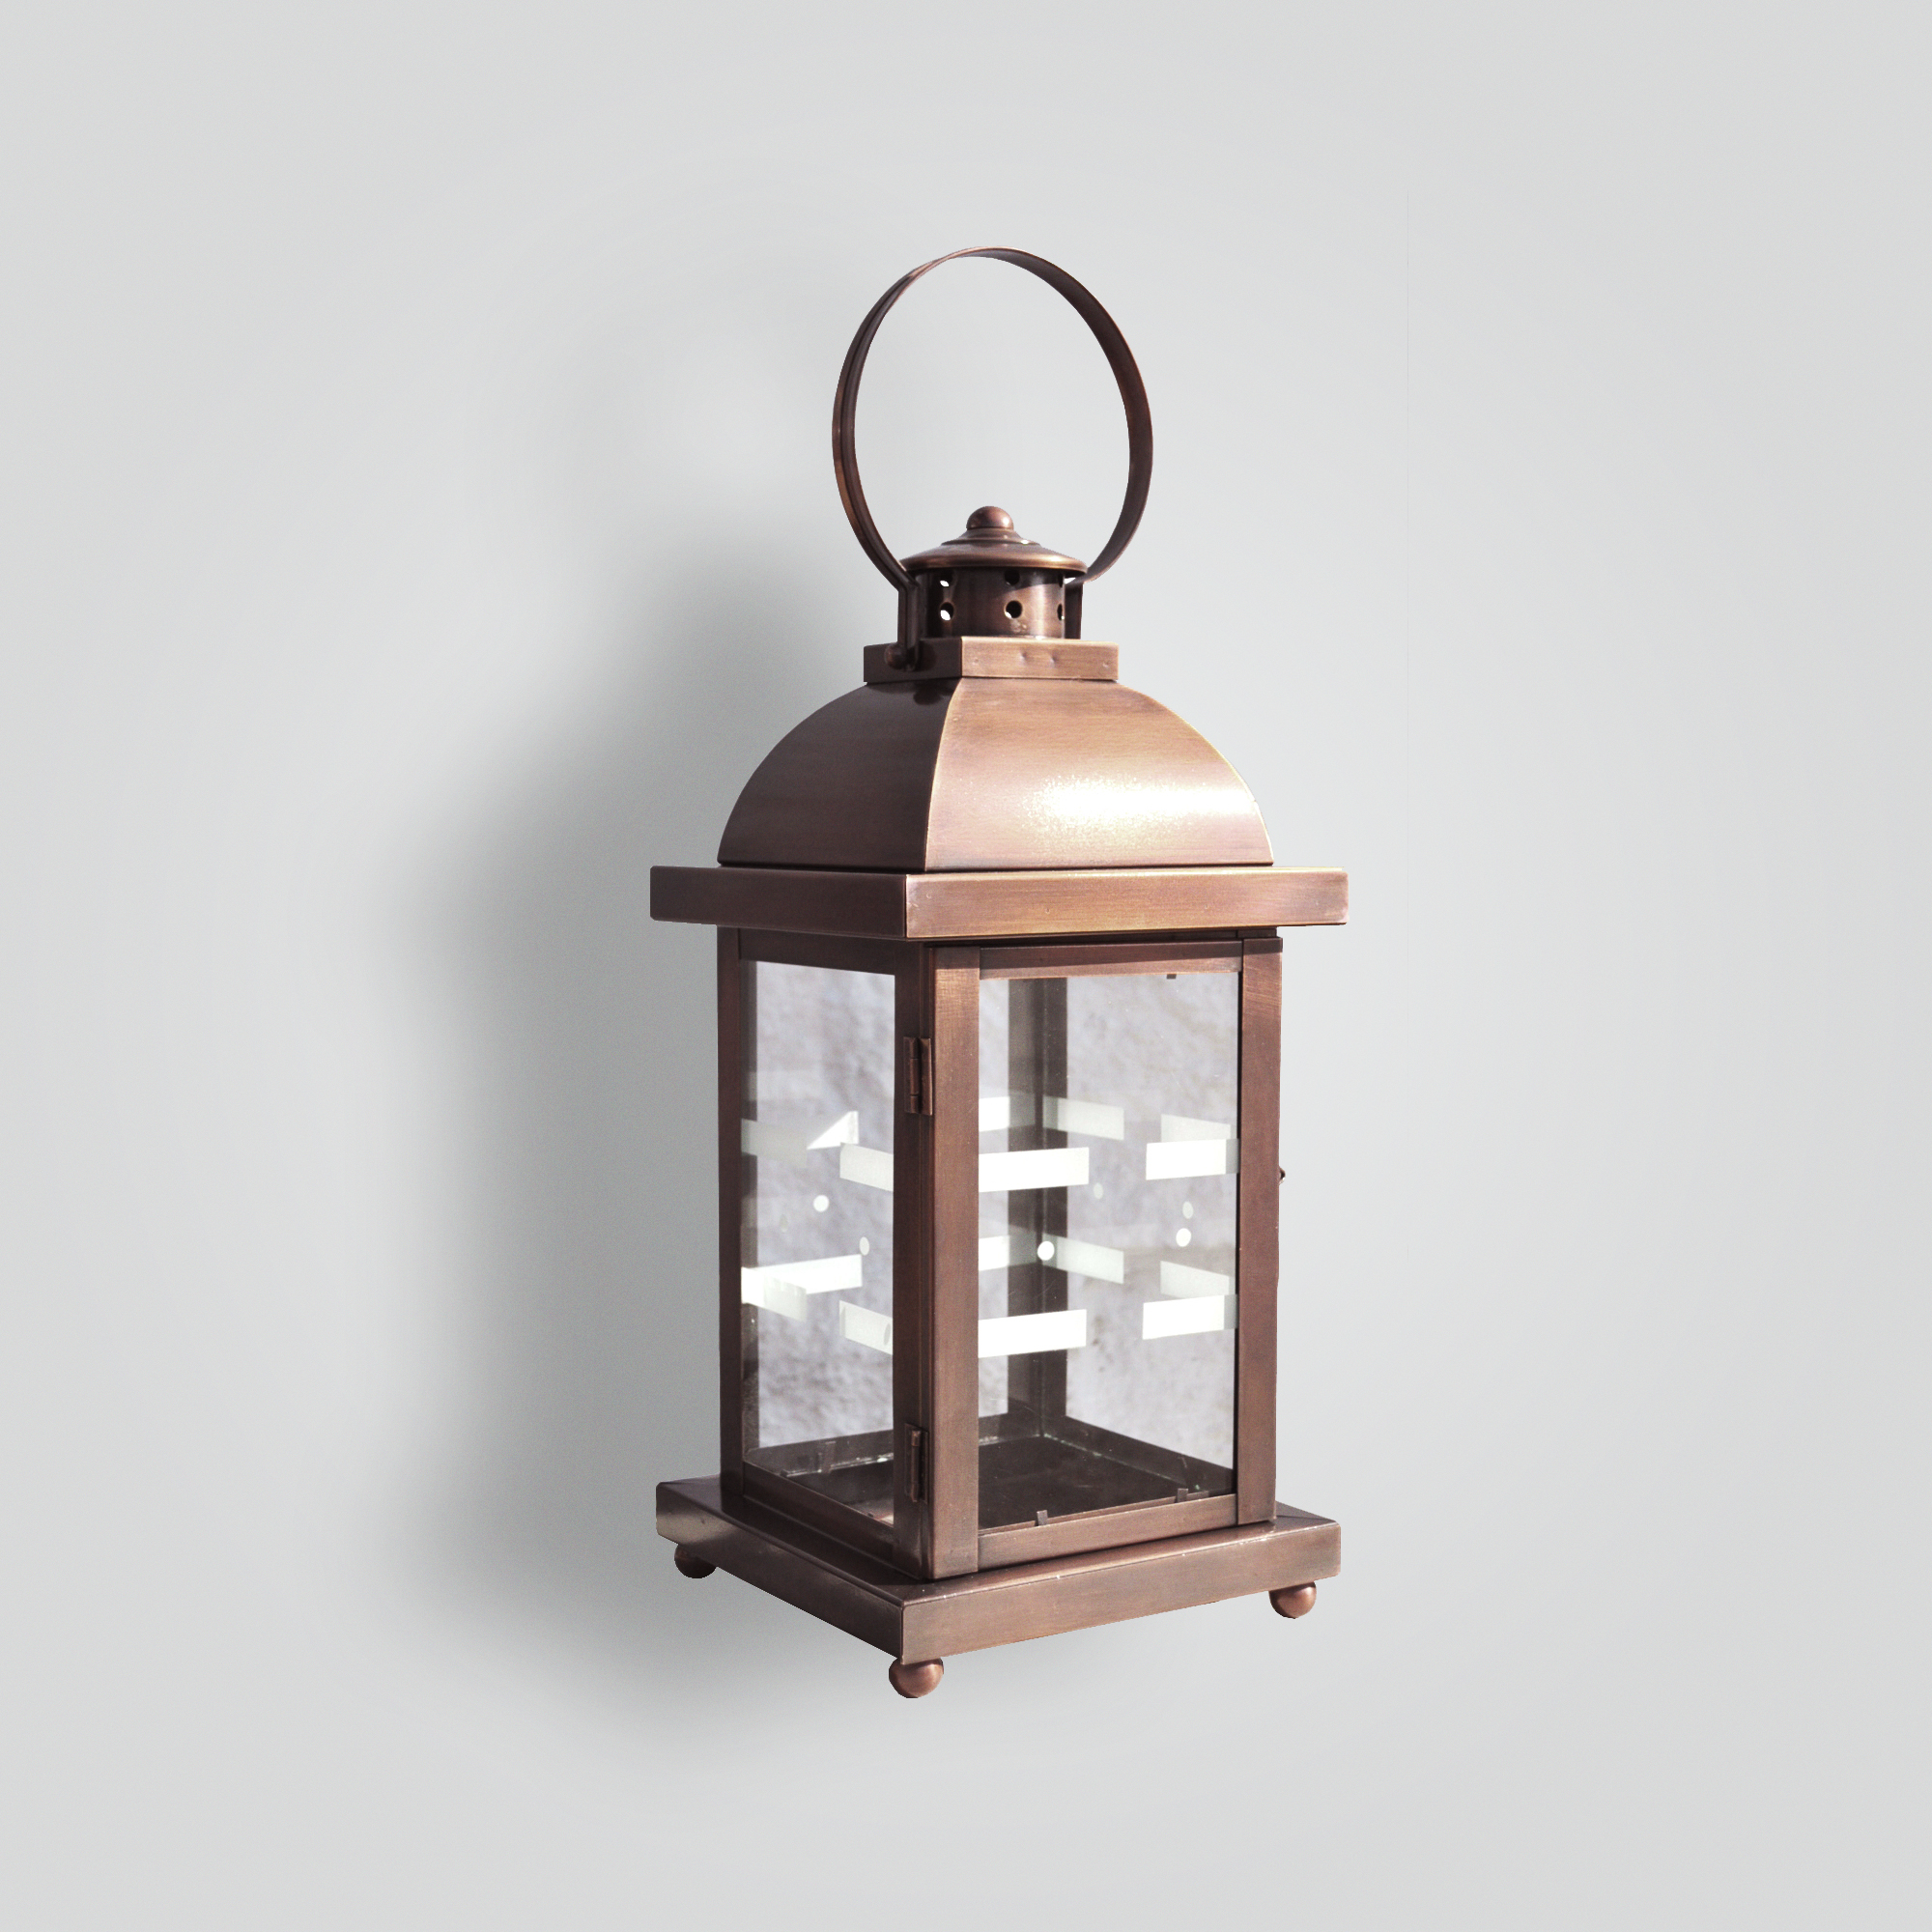 760-cb1-br-p-sh-rex-lantern-with-etched-glass-pattern – ADG Lighting Collection